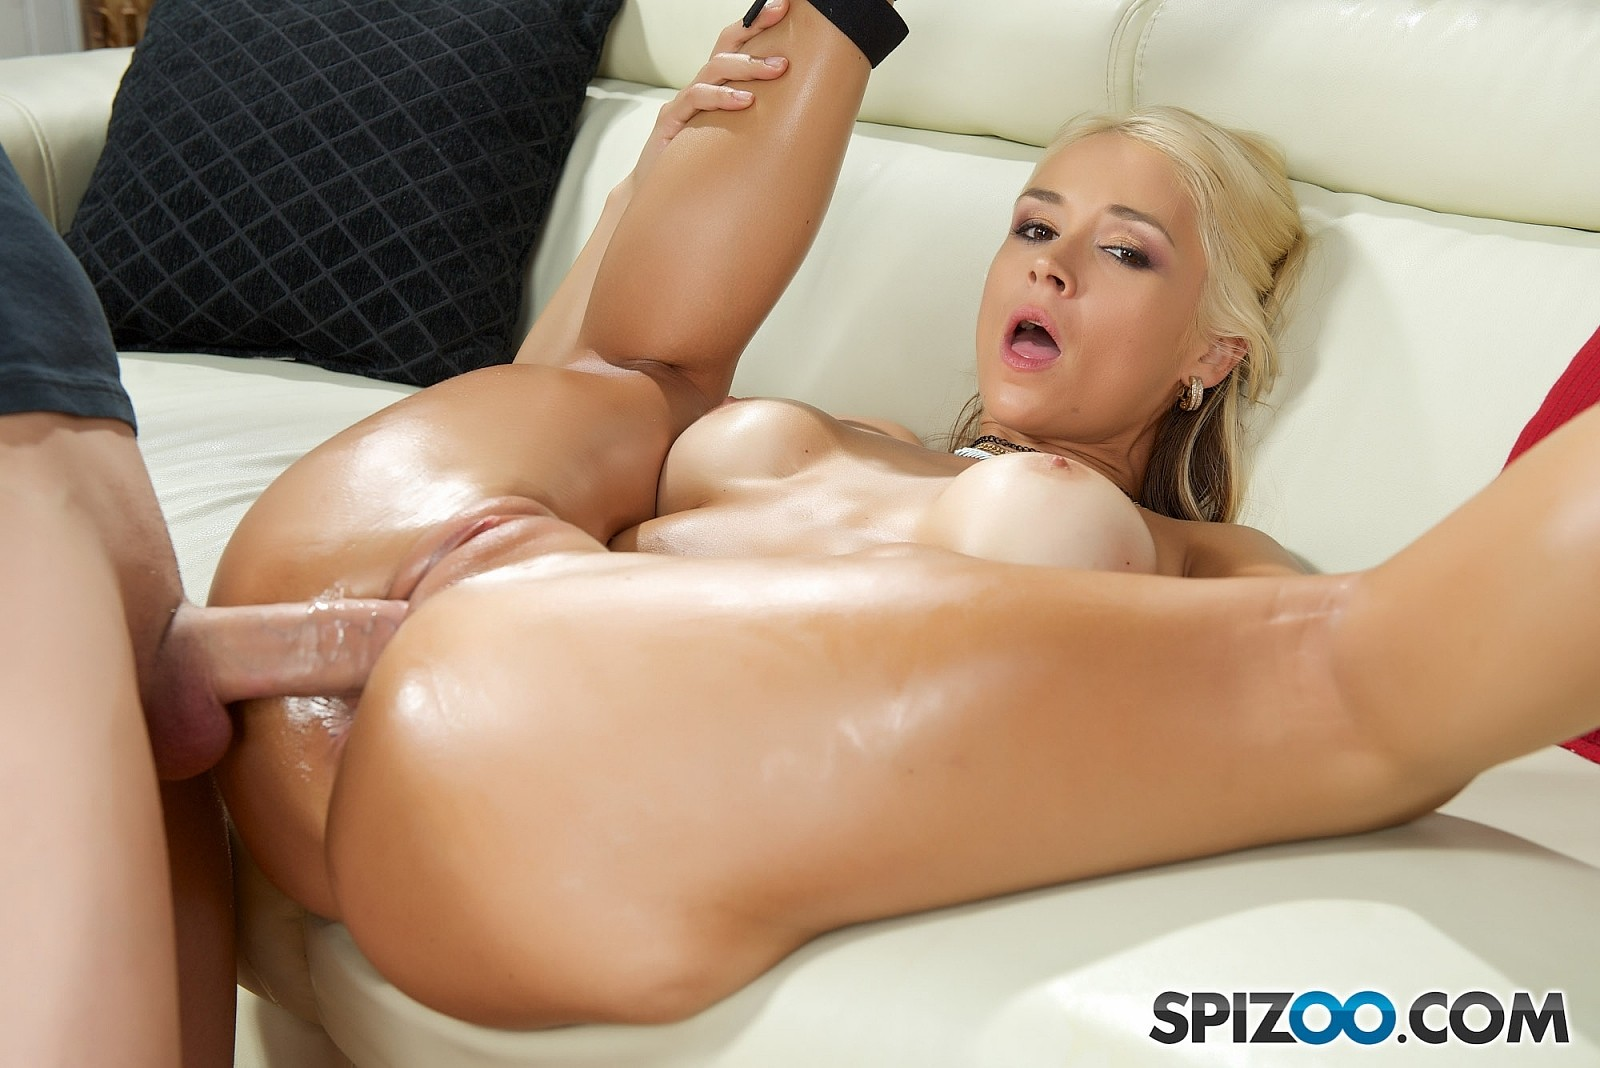 Stunning blonde extremely rough fucked